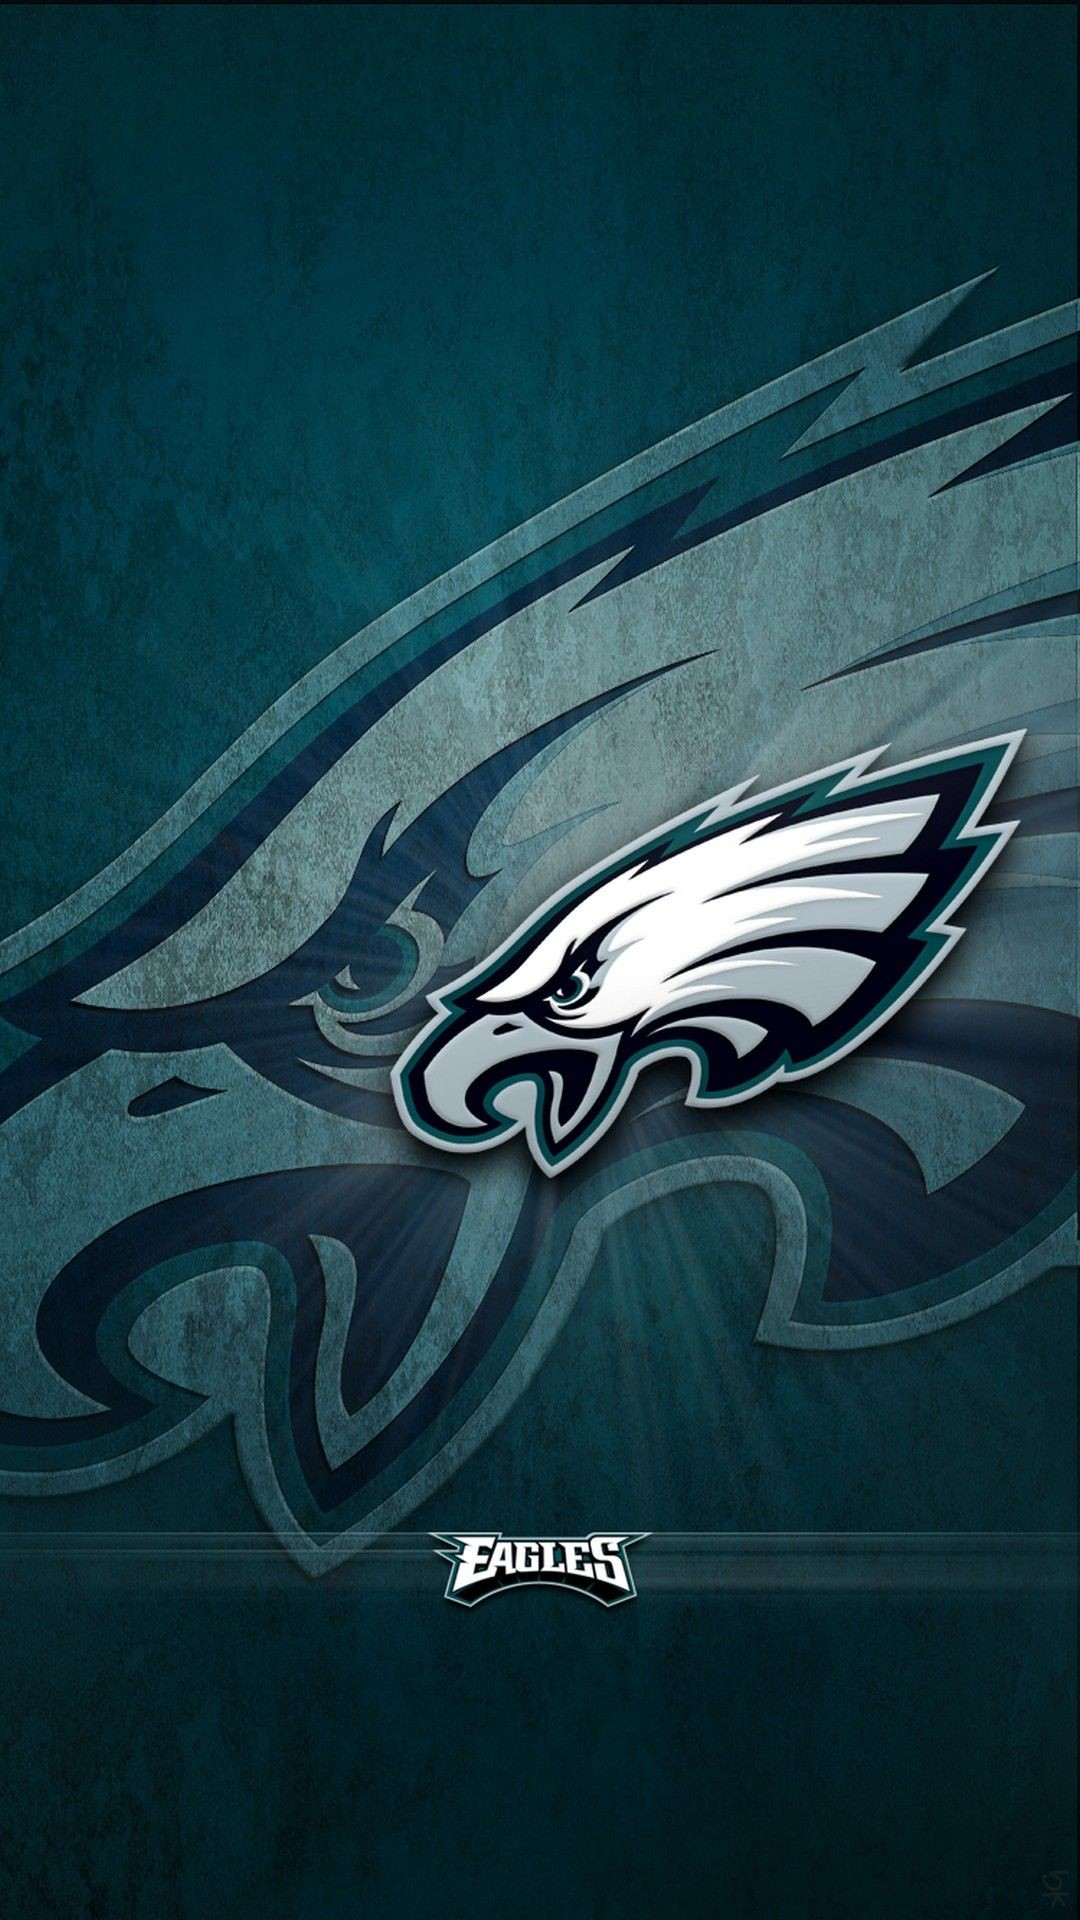 1080x1920 NFL Eagles iPhone 7 Plus Wallpaper | Best Wallpaper HD